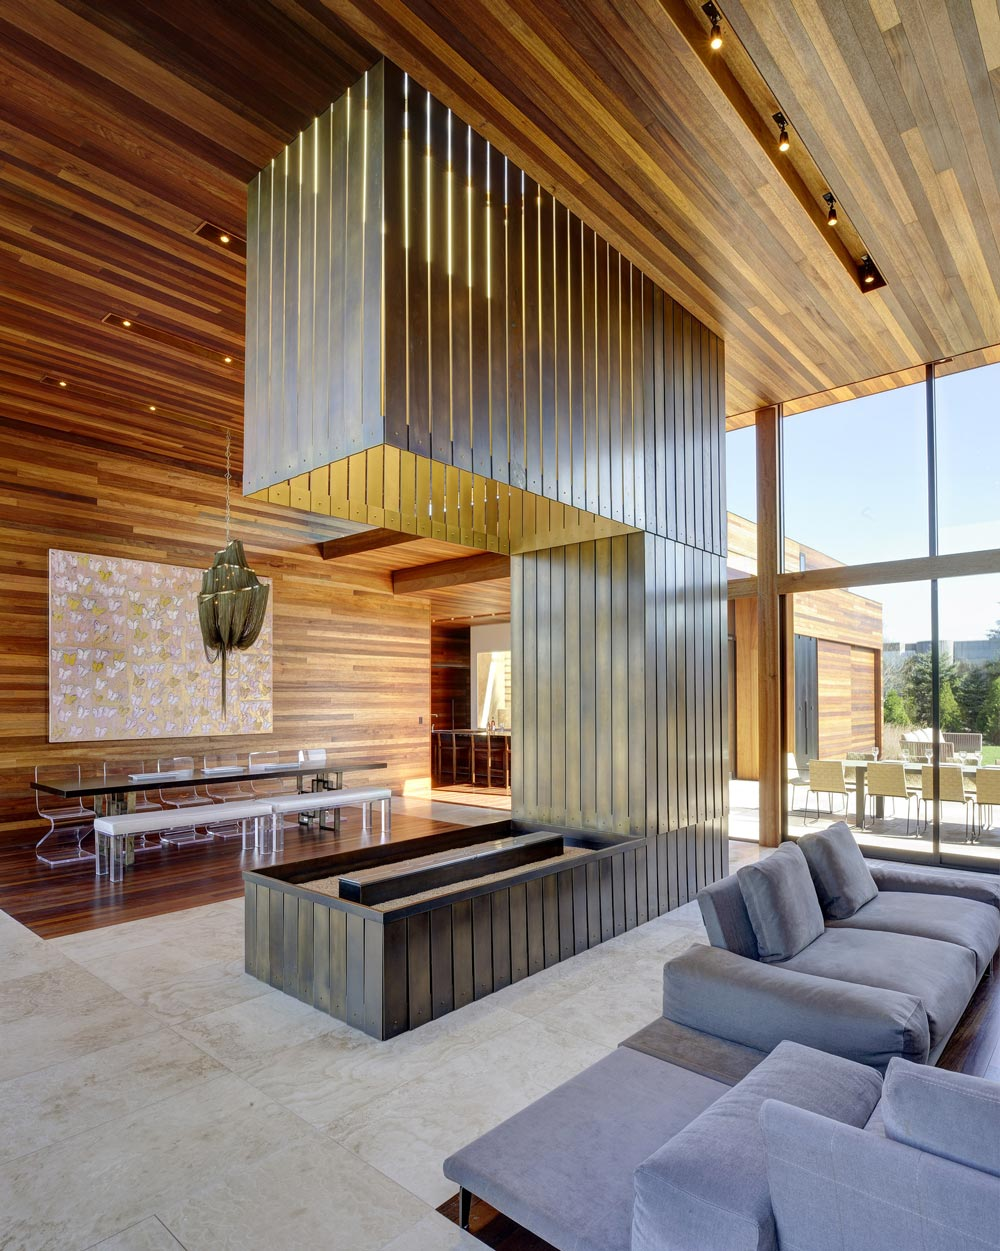 Contemporary Fireplace, Sam's Creek in Bridgehampton, New York by Bates Masi Architects